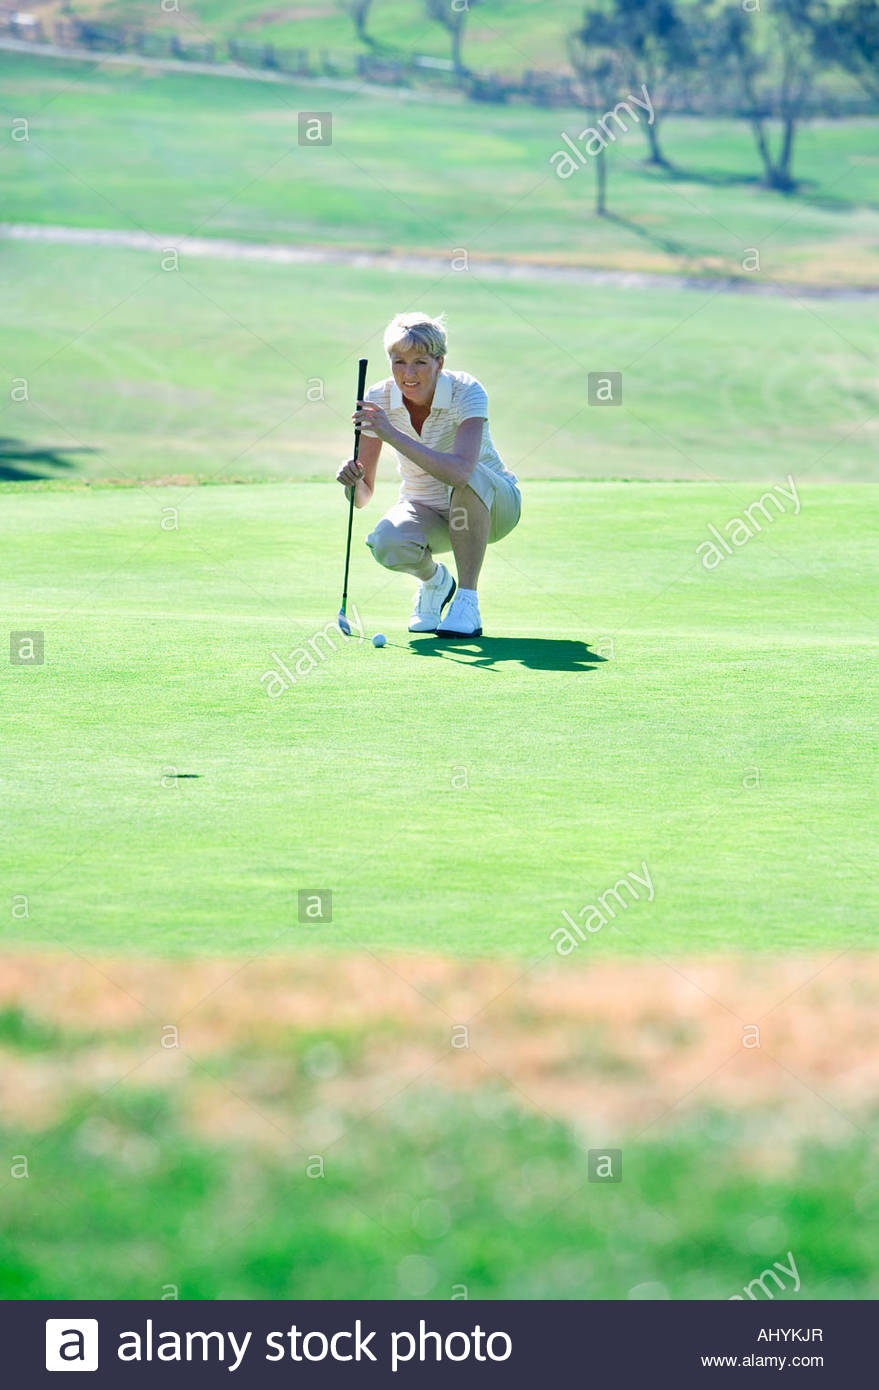 Mature woman lining up putting shot on green in mid-distance, holding putter, crouching, focus on background - Stock Image